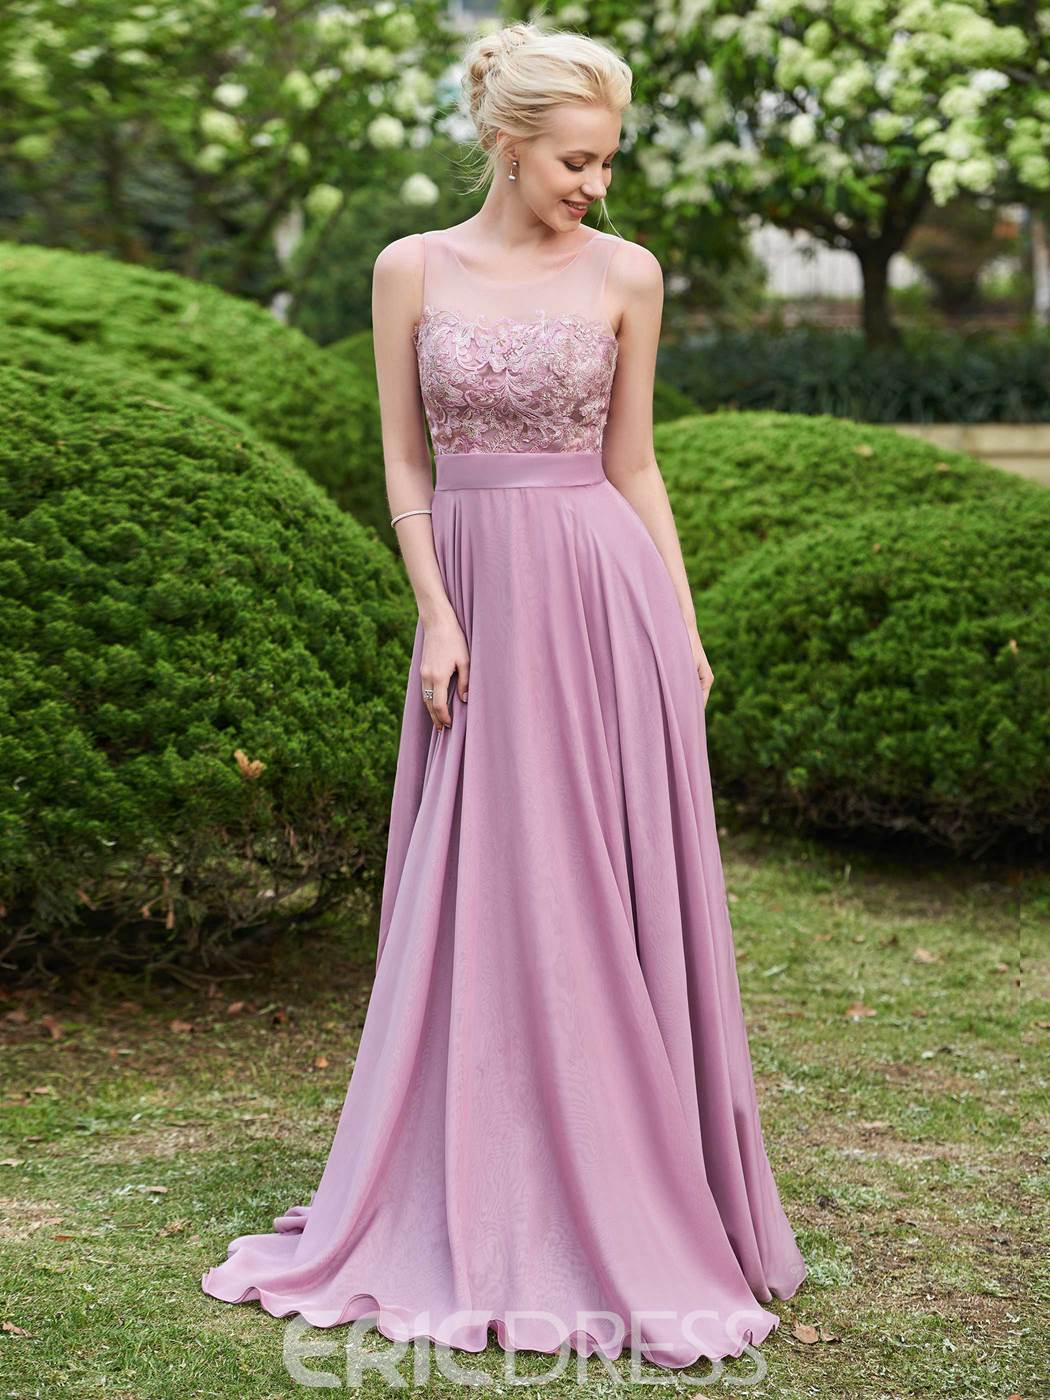 Ericdress Scoop Lace A Line Long Bridesmaid Dress